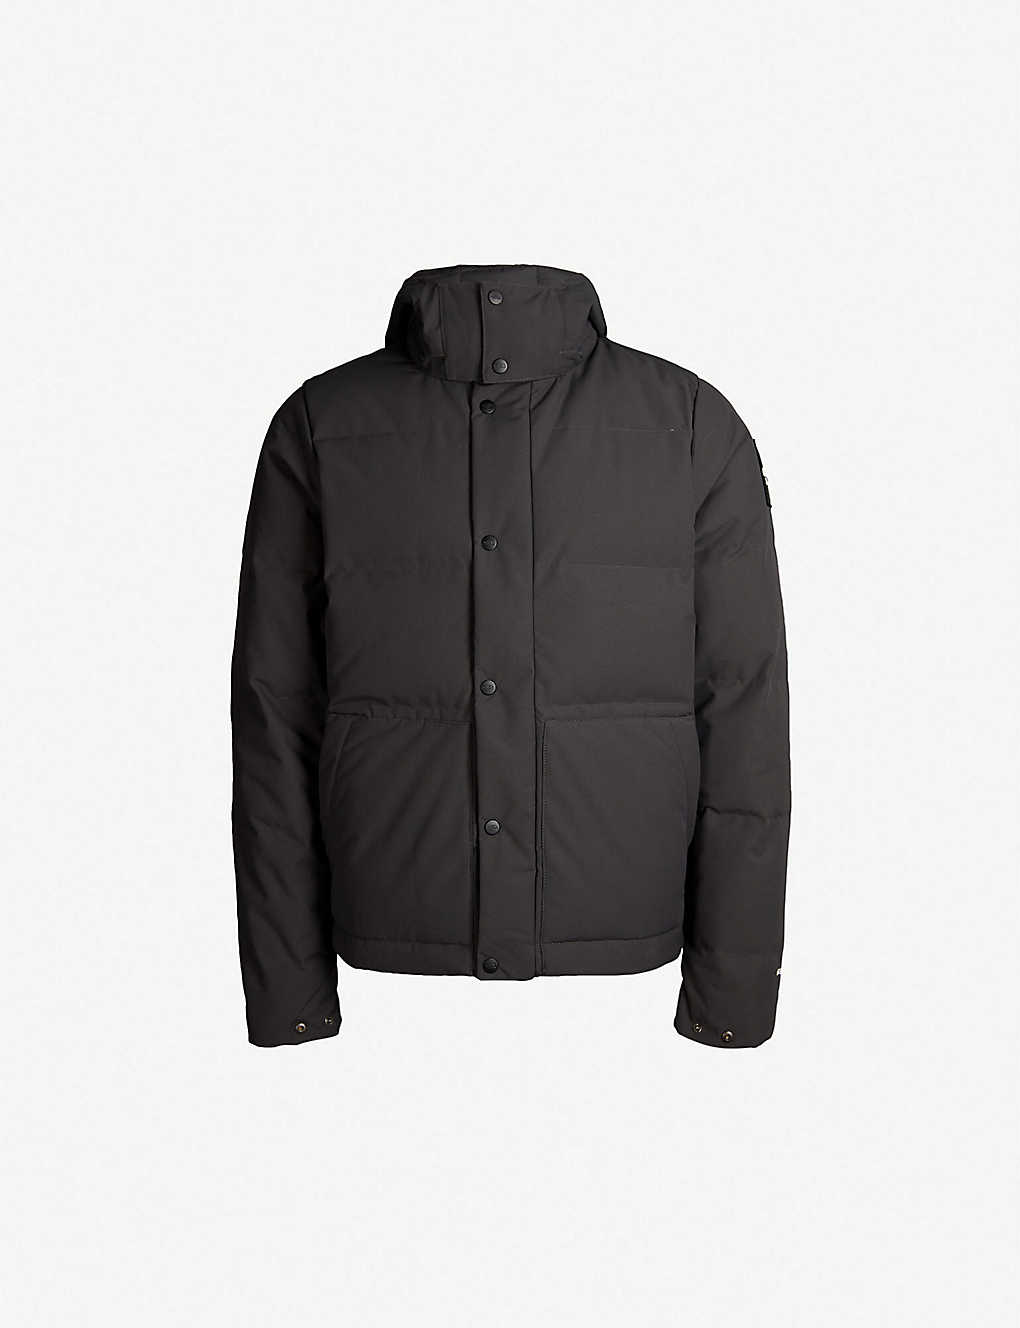 THE NORTH FACE - Box Canyon shell and down-blend jacket  f23d33dcd8